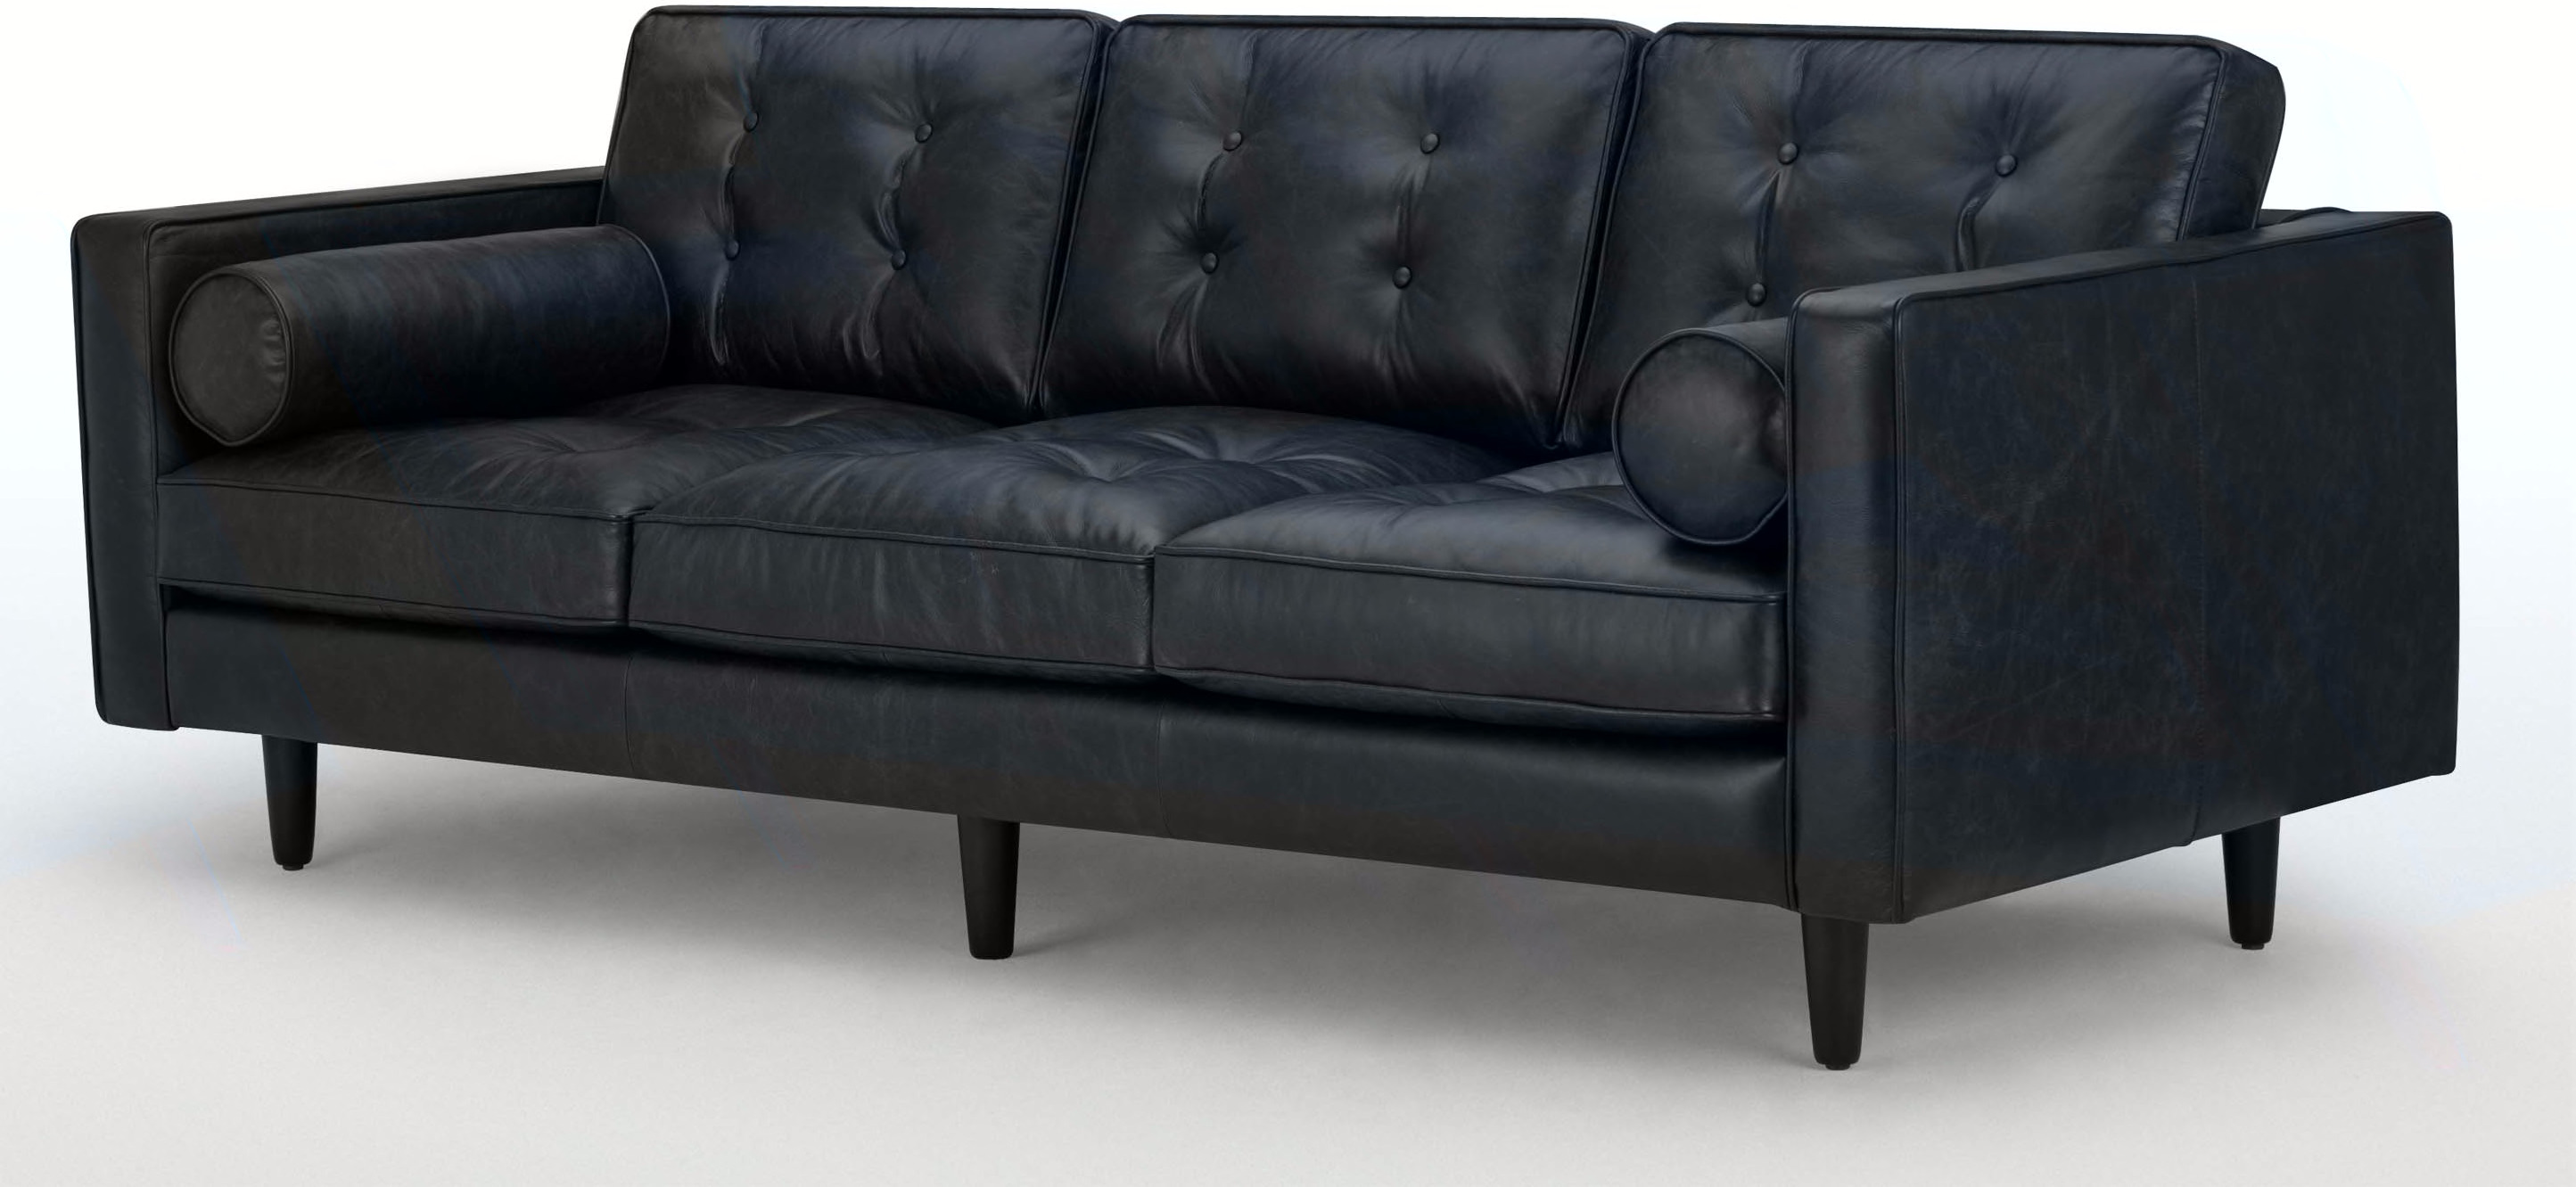 Buy Cheap 3 Seater Black Leather Sofa Compare Sofas